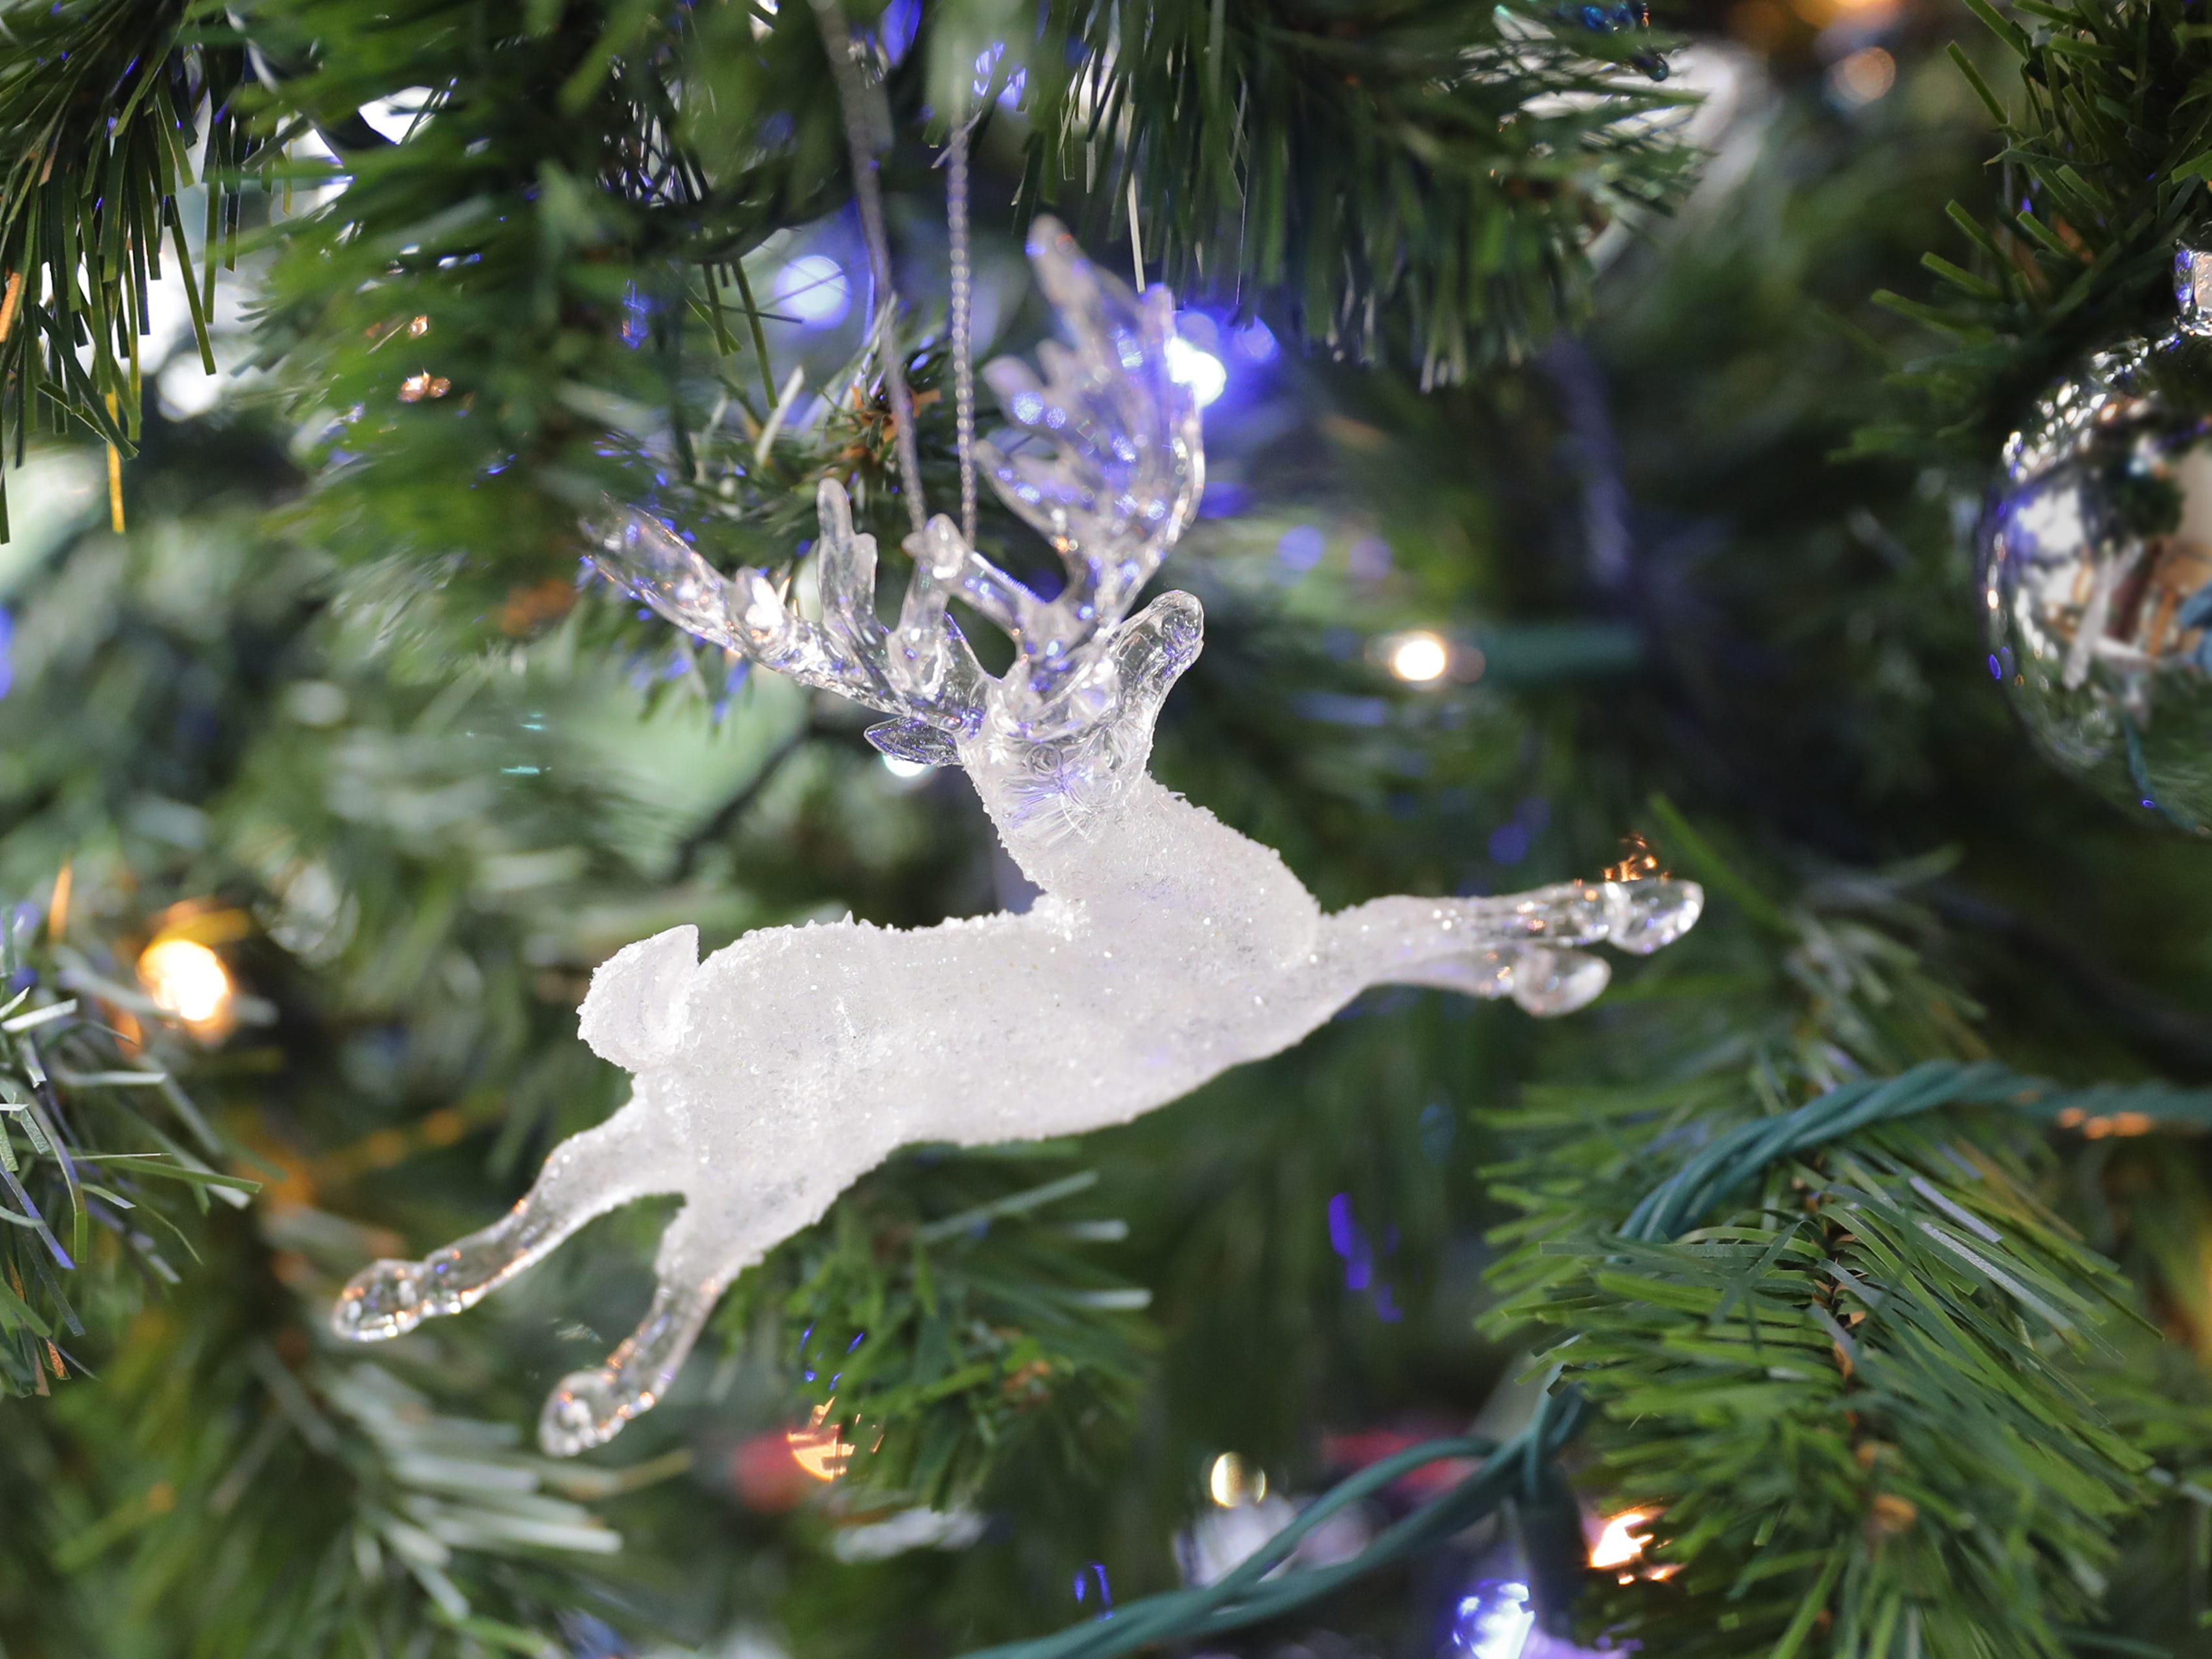 A hunting tree with glass deer ornaments adds cheer to the office.